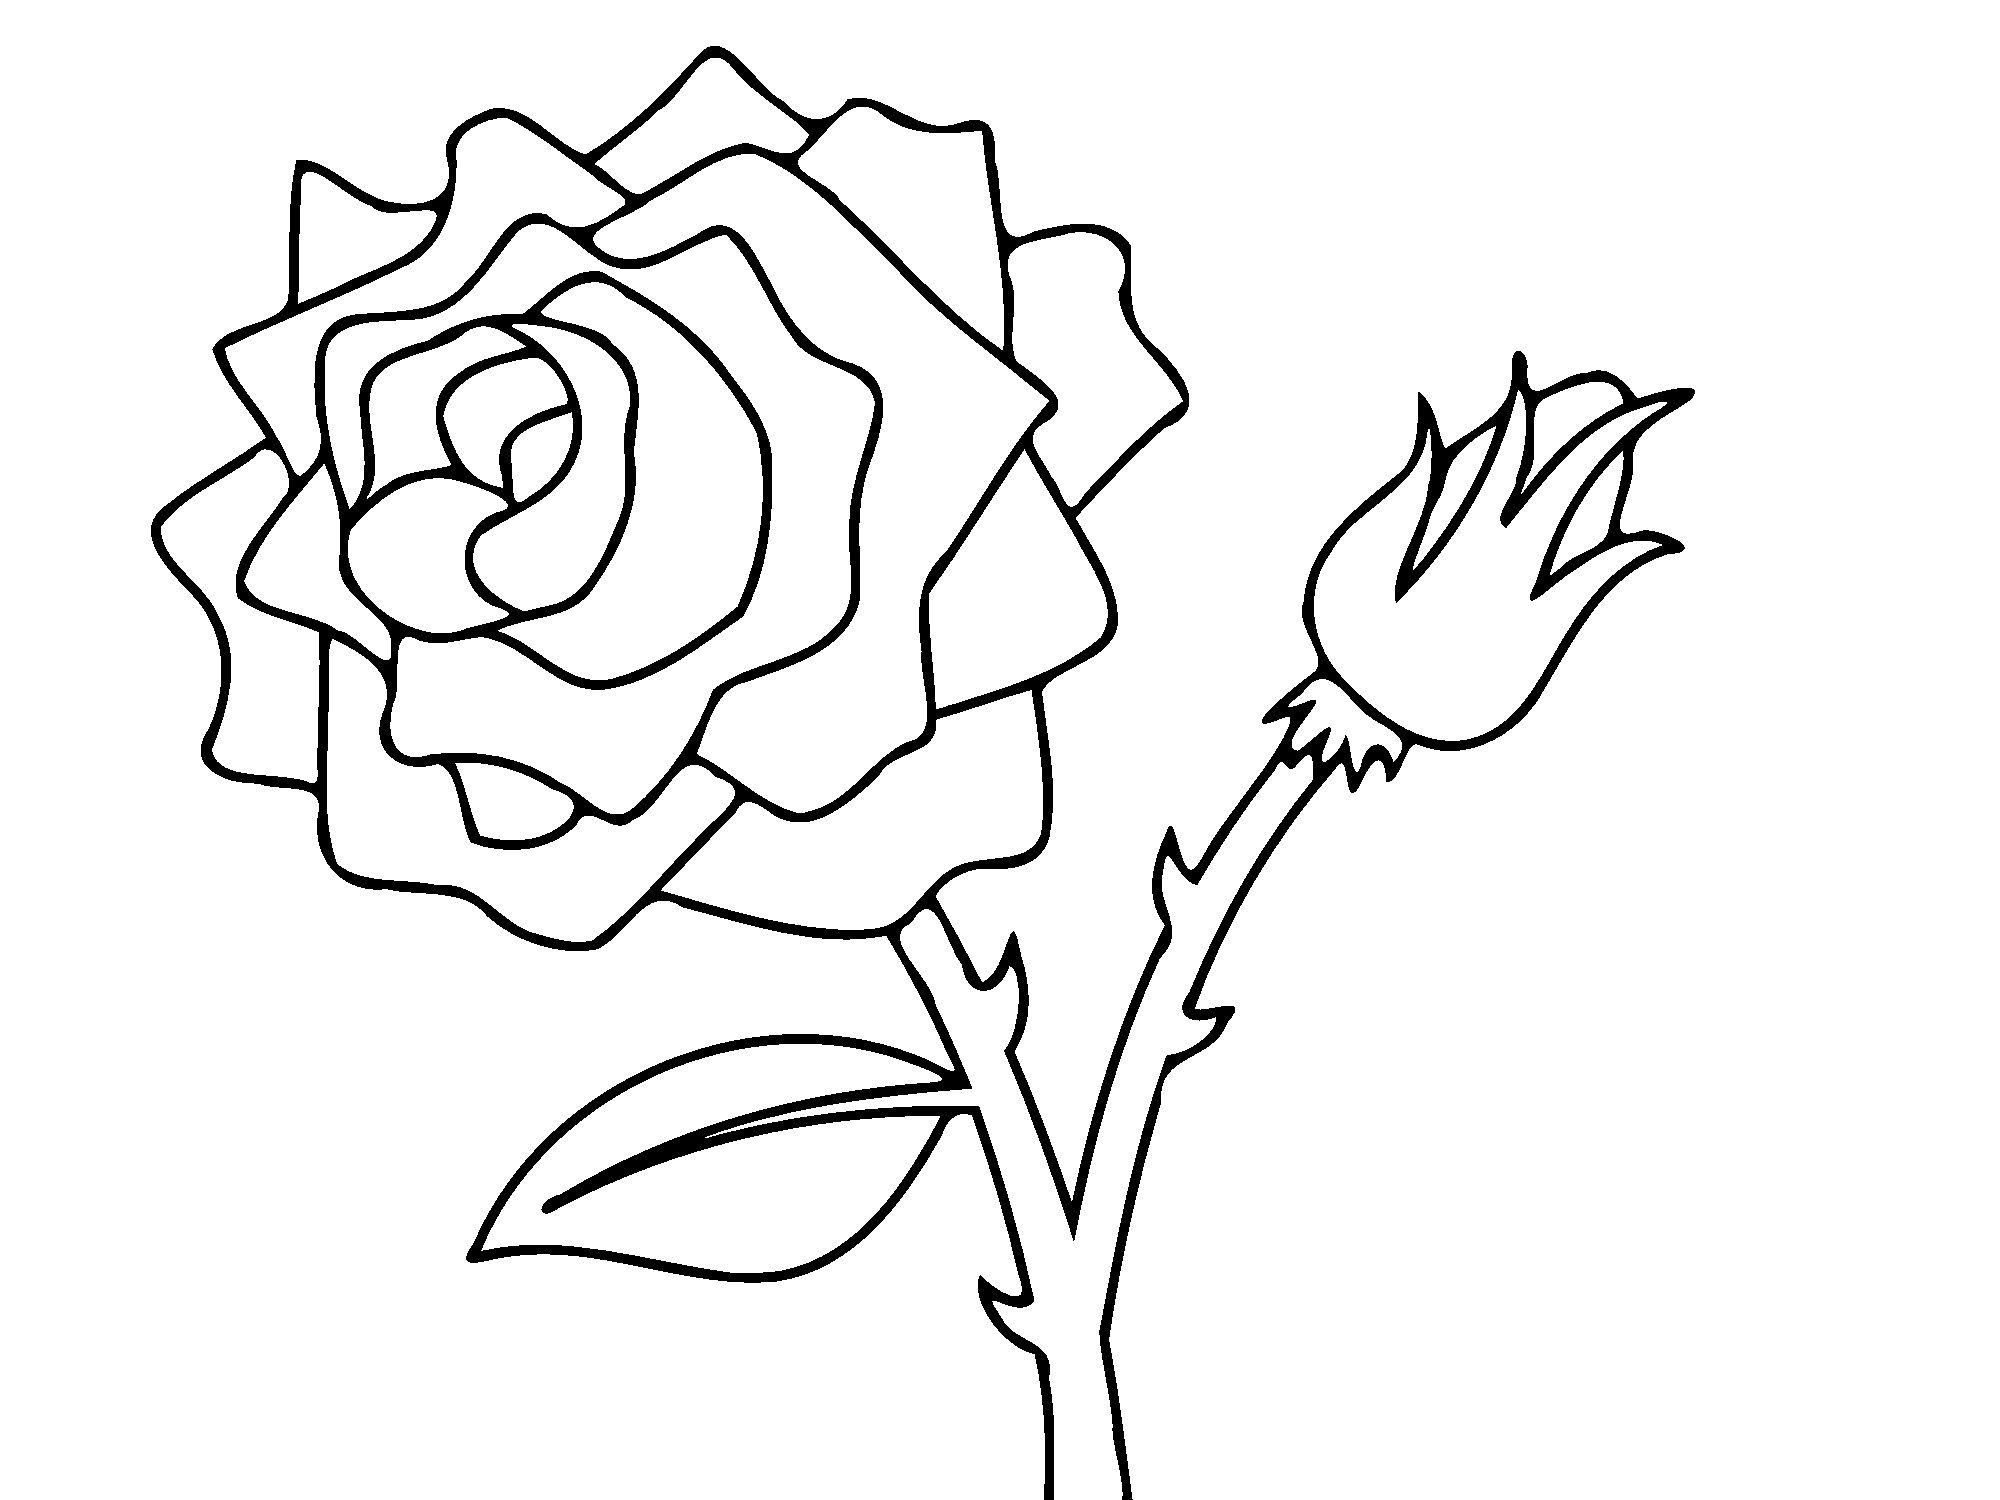 2000x1500 Amazing Rose Bud Flower Coloring Pages For Kids Inspirational Easy